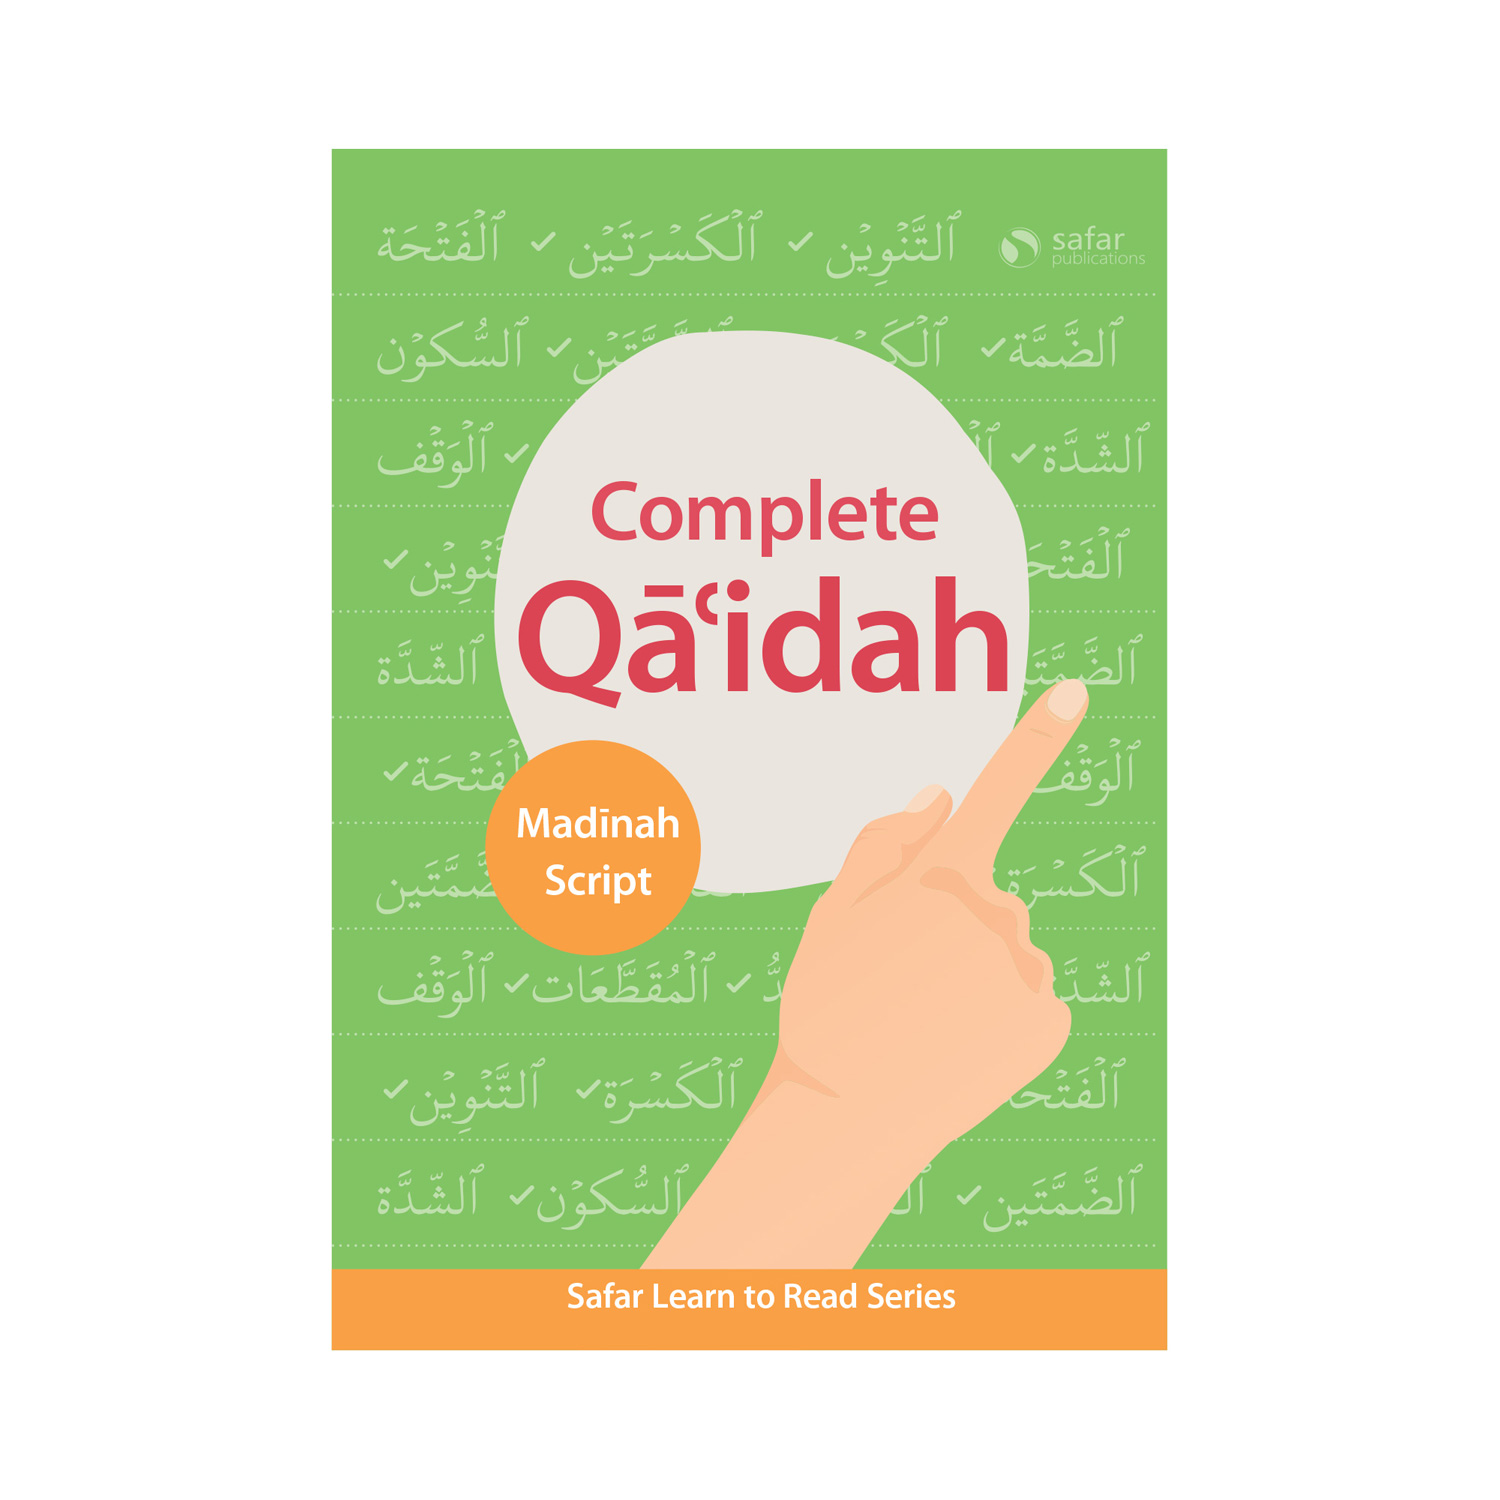 Safar Publications - Learn to Read Series - Complete Qiadah: Madinah Series - Islamic Books for children and adults